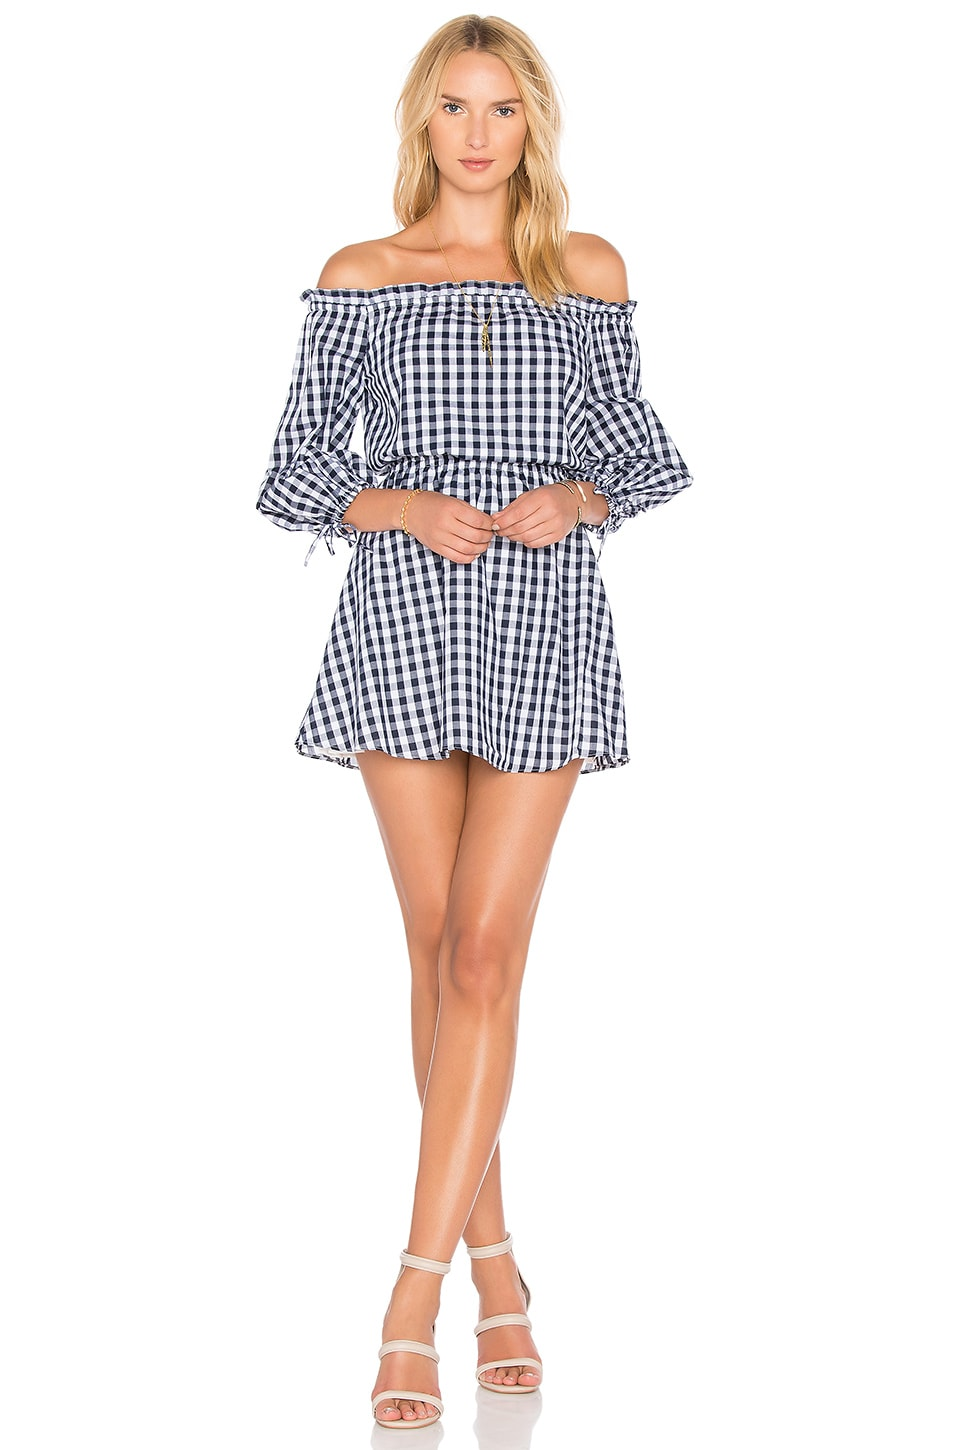 Lovers + Friends Get Lost Dress in Medium Blue Gingham